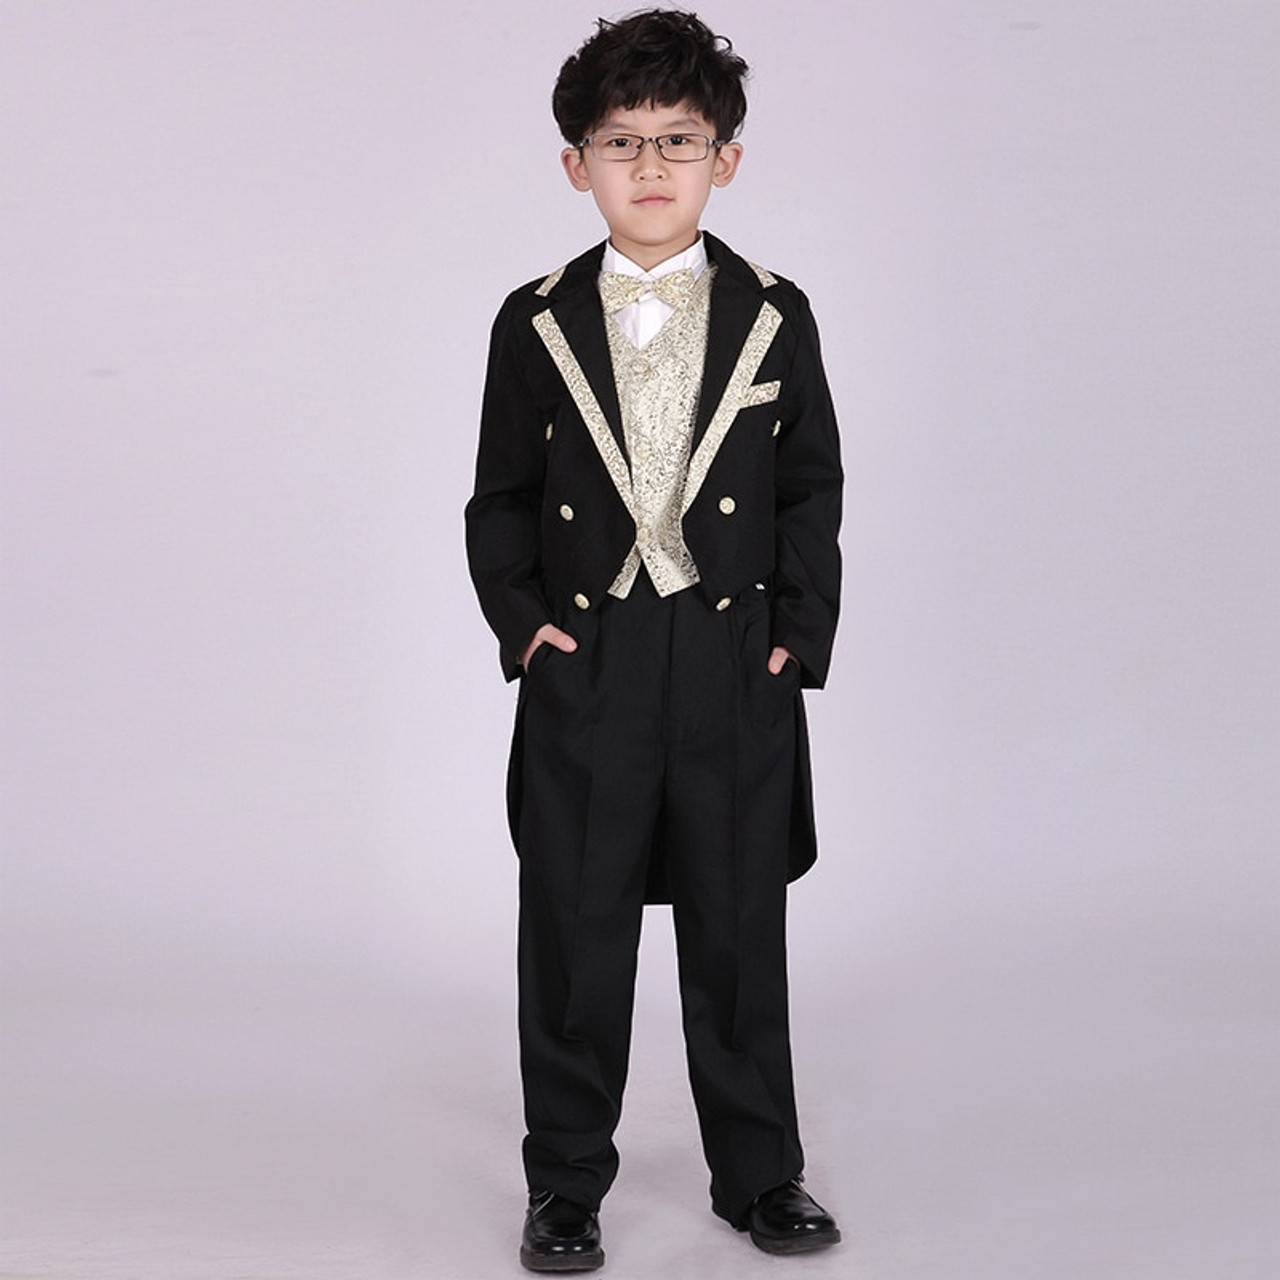 bc0961c5802c7 ... Boys Formal Dress Tuxedo Piano Performance Costume Flower Boy Birthday Wedding  Suits 5pcs Jacket + Vest ...